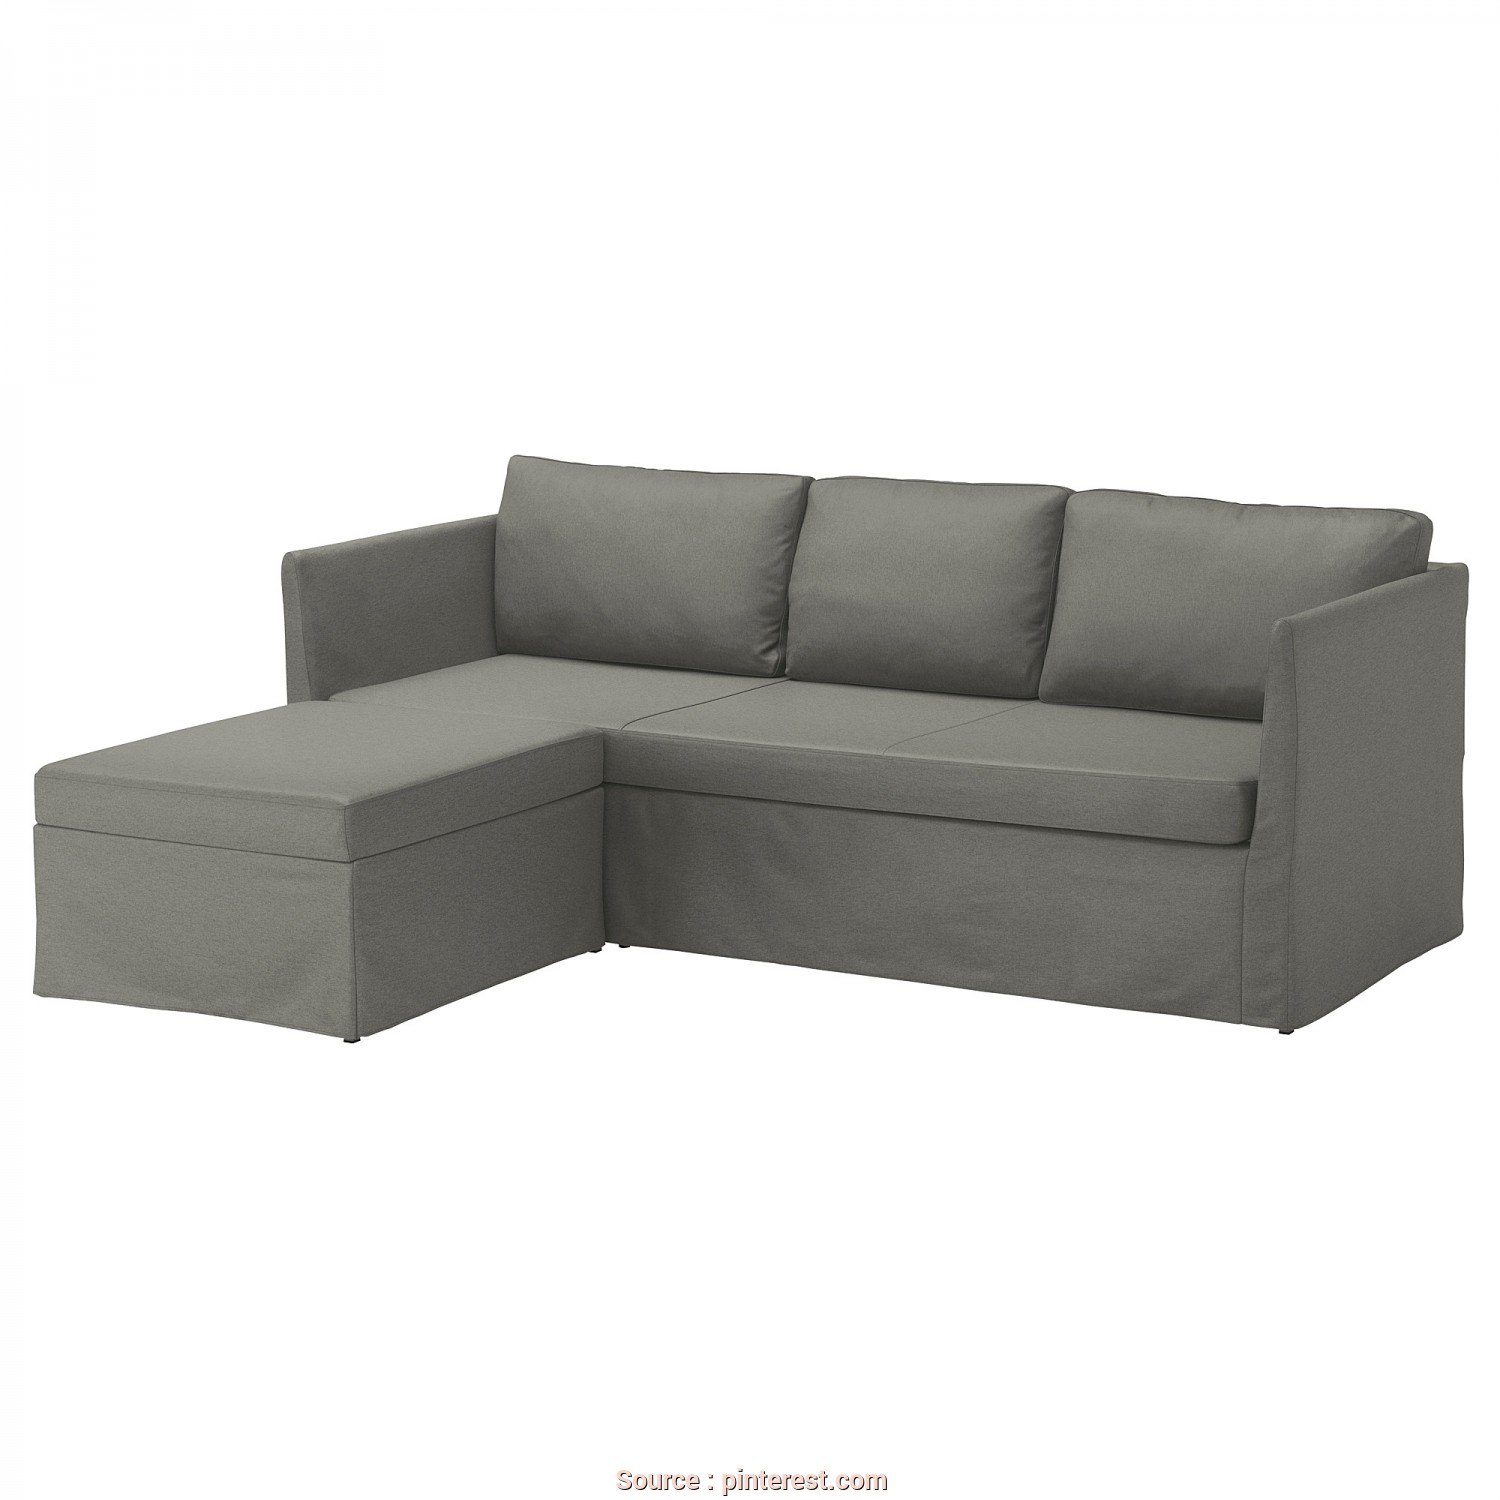 Ikea Vilasund 2 Seat Sofa, Review, Casuale Discover Ideas About Sofa, With Chaise. IKEA VILASUND